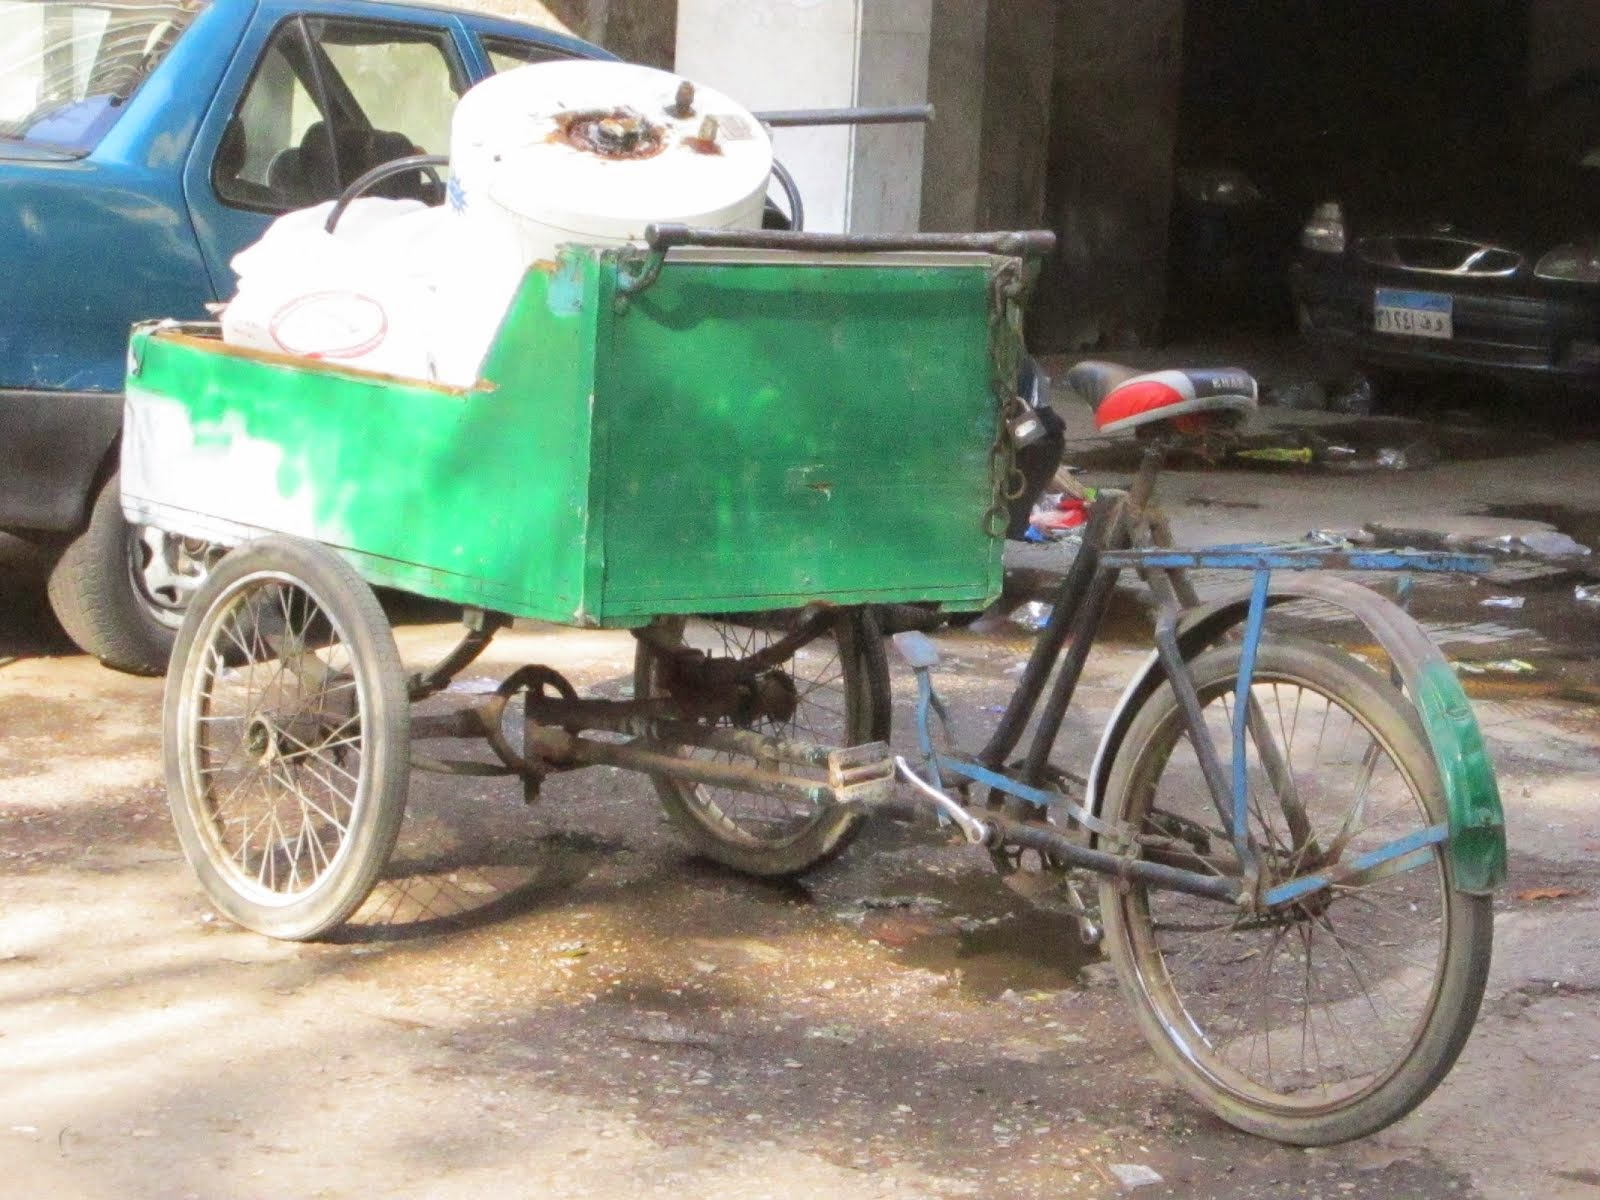 Another Cool Bicycle Used for Sustainable Transport in Cairo